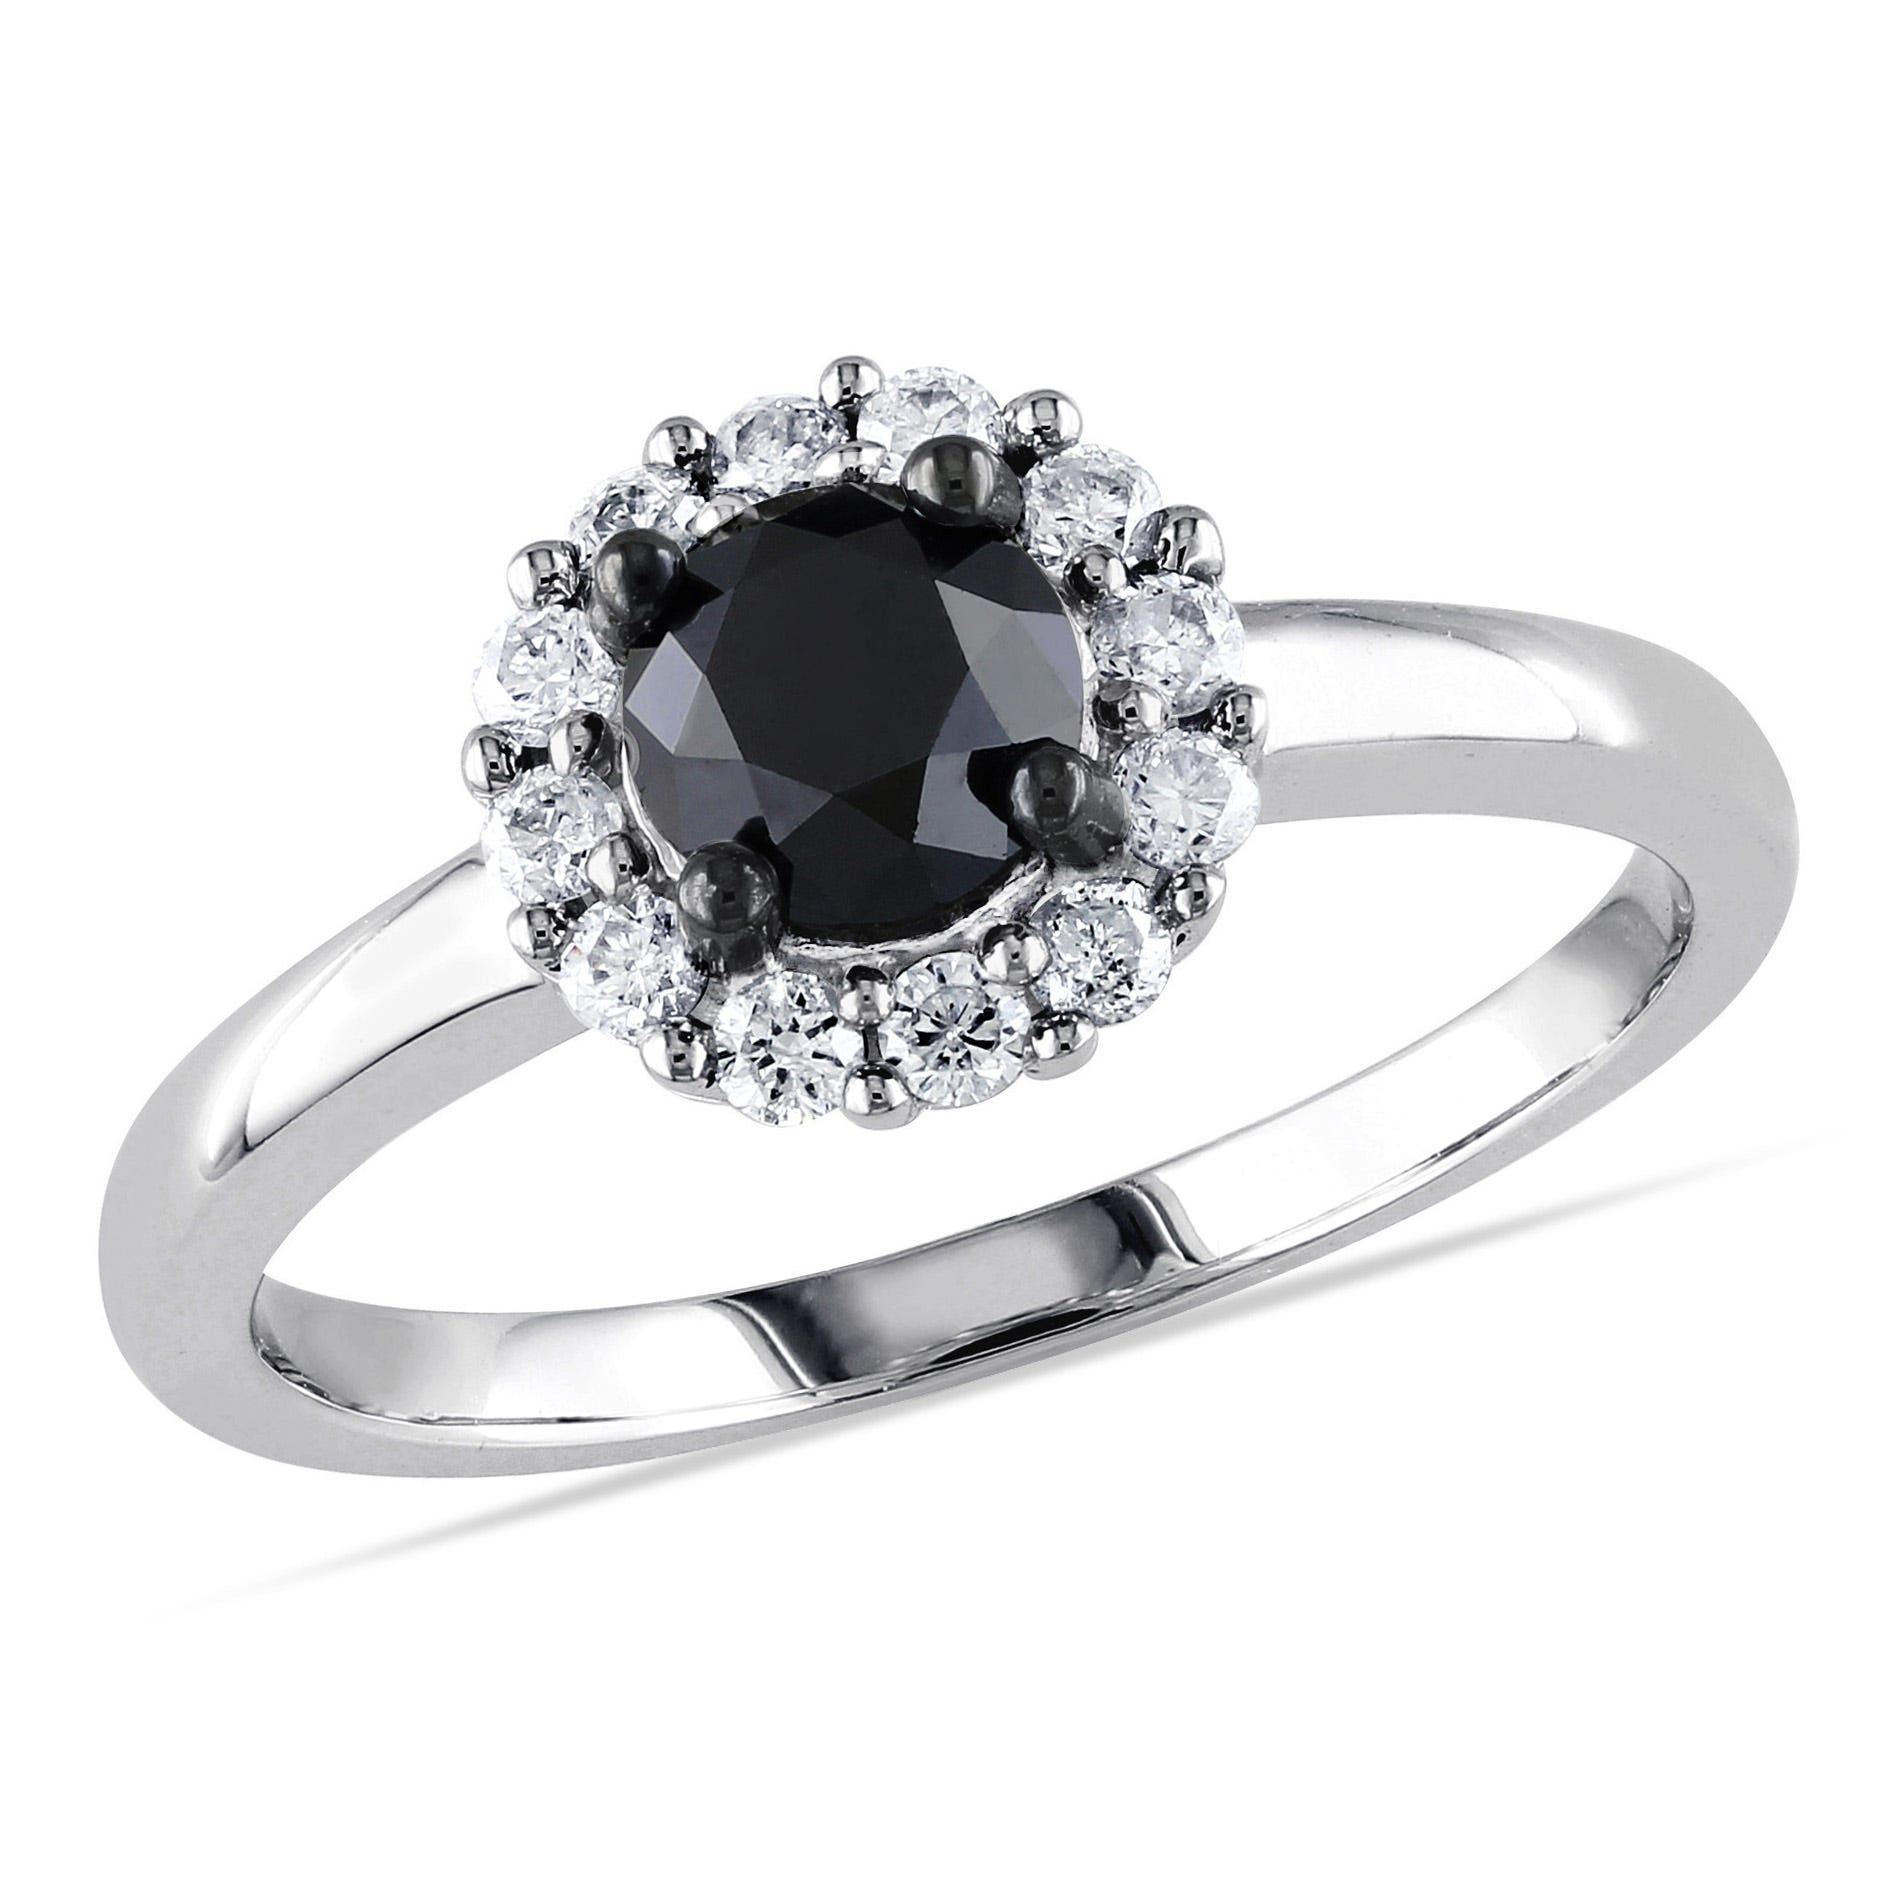 Round Black Diamond & White Diamond Halo 1ctw. Engagement Ring in 10k White Gold